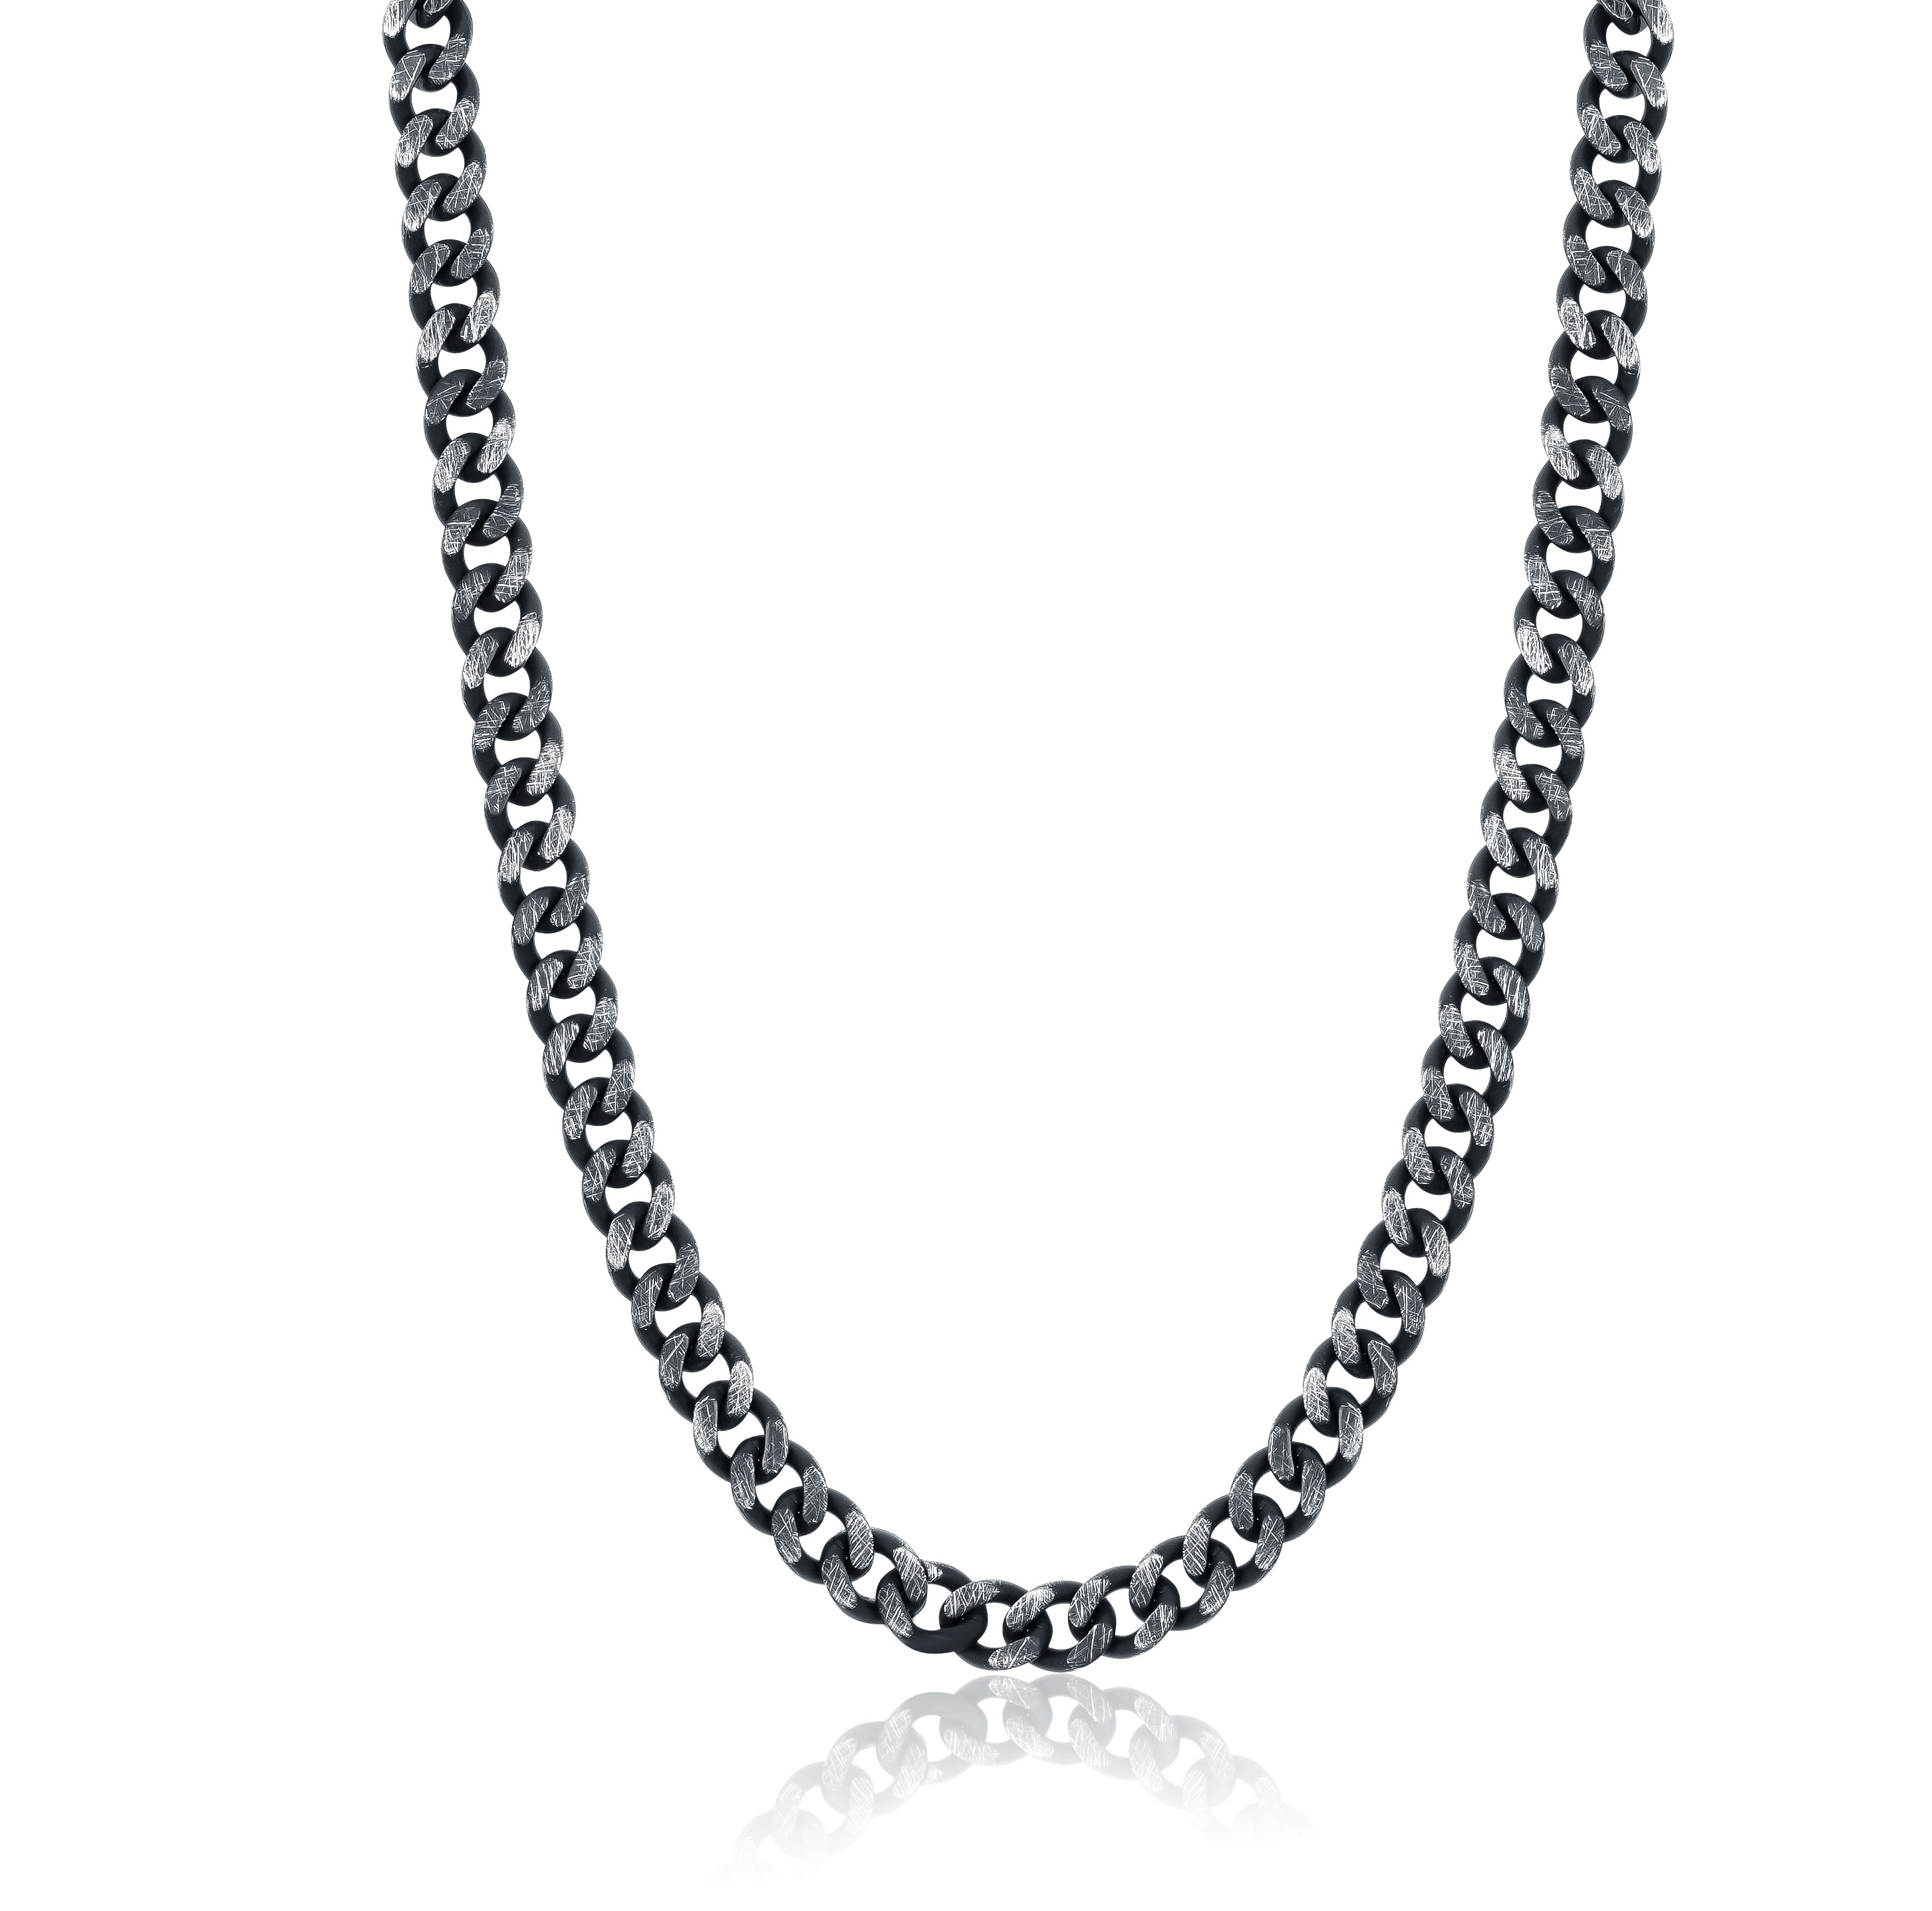 22'' Chain - Black stainless steel